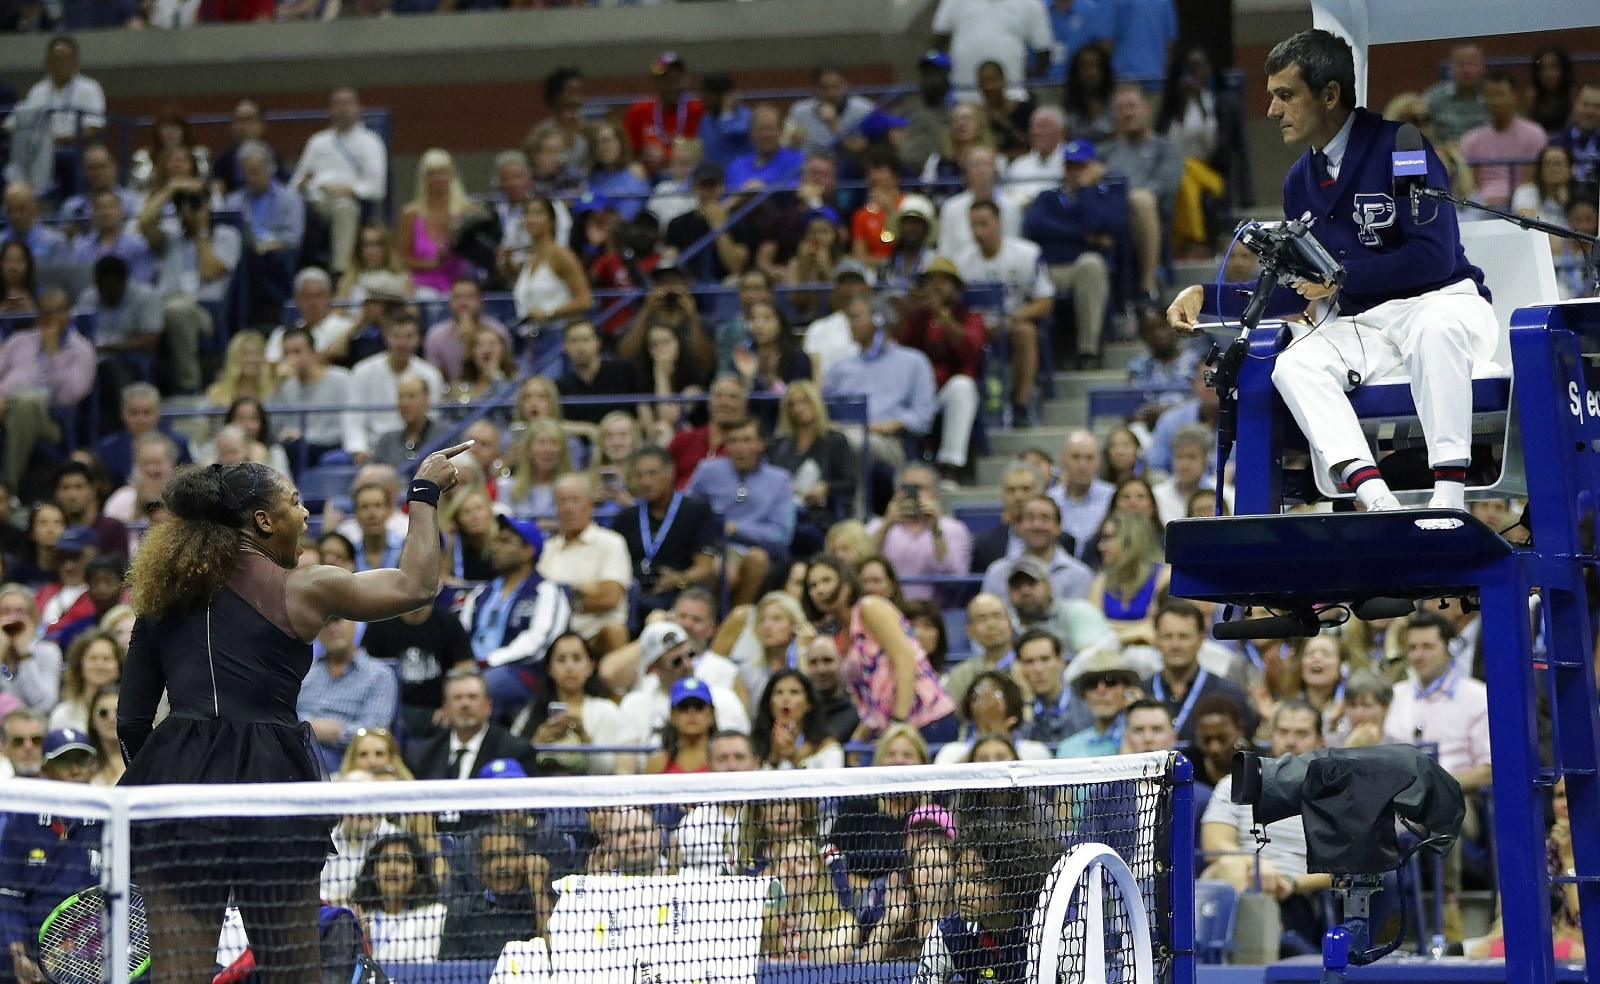 Serena Williams argues with chair umpire Carlos Ramos during a match against Naomi Osaka, of Japan, in the women's final of the US Open tennis tournament on September 8, 2018, in New York. (AP Photo/Julio Cortez)